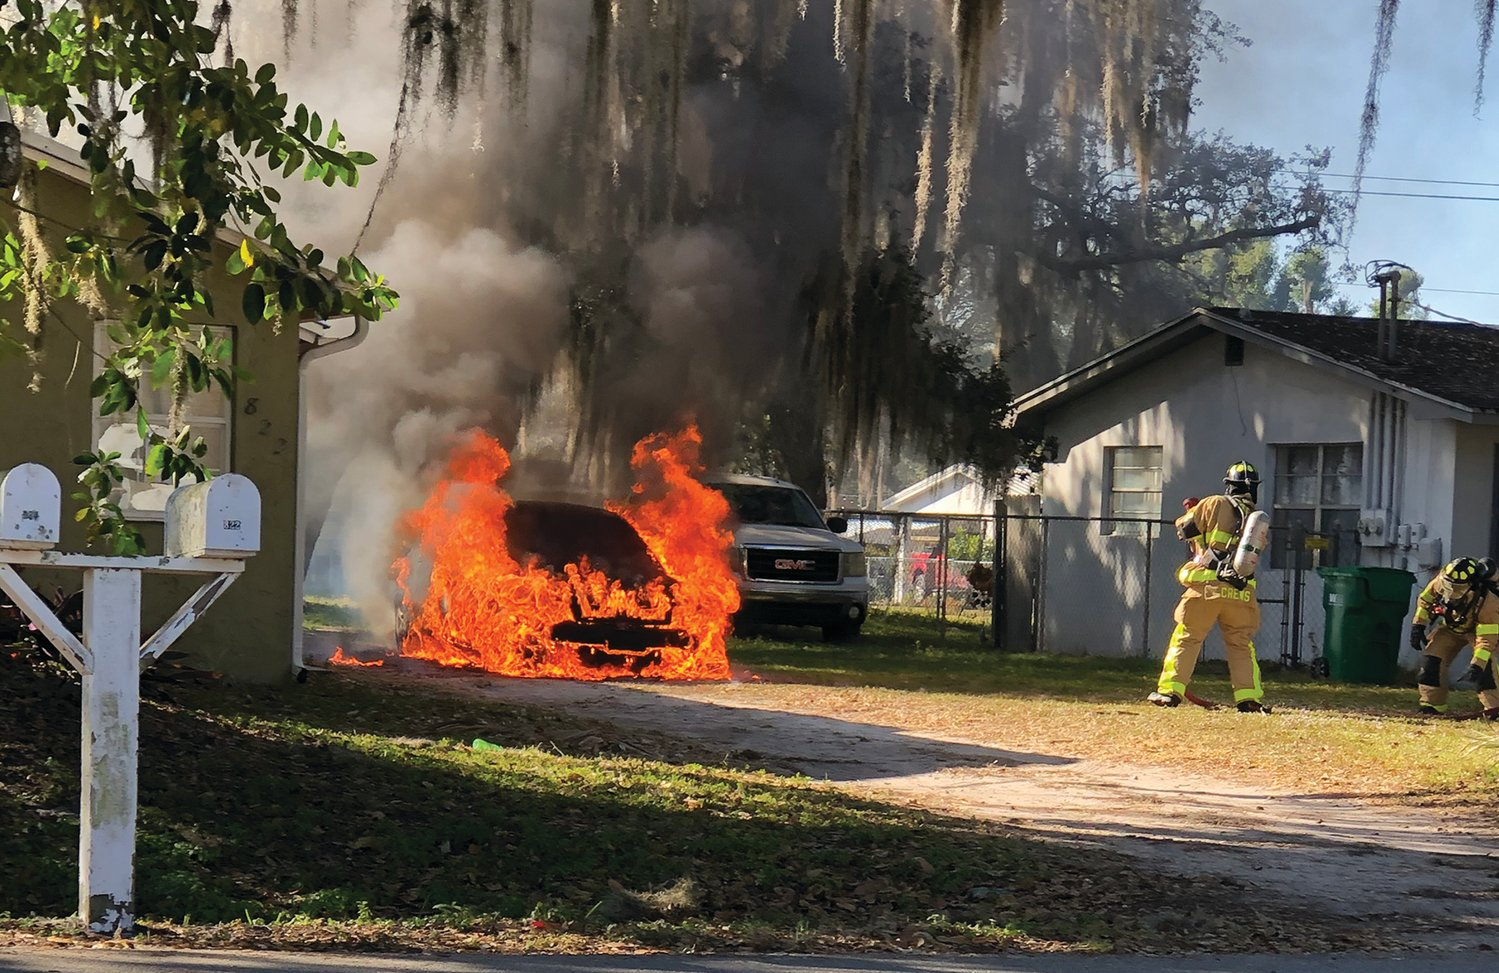 OCFR assisted OCFD Sunday morning, Jan. 10 at the scene of a vehicle fire in front of a residence on Southeast Eighth Street. The fire was extinguished, no injuries occurred, and the building was not damaged.